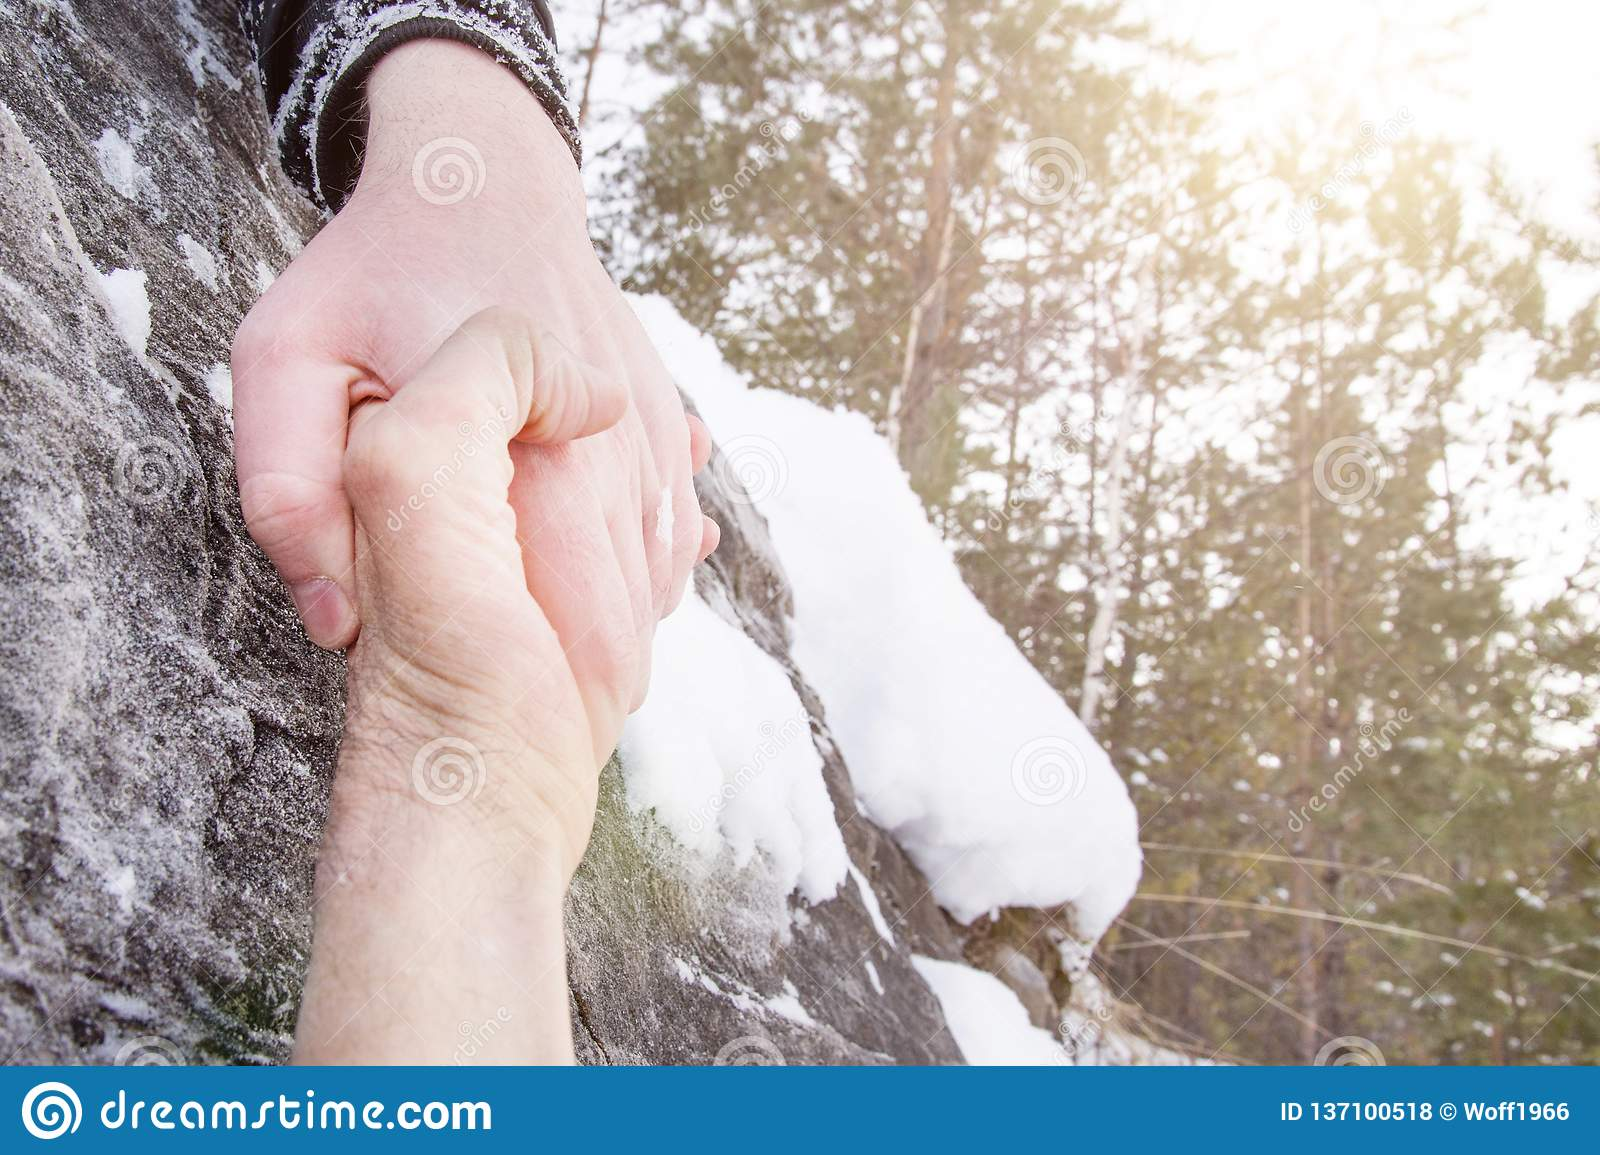 Giving a helping hand. Snow in the mountains